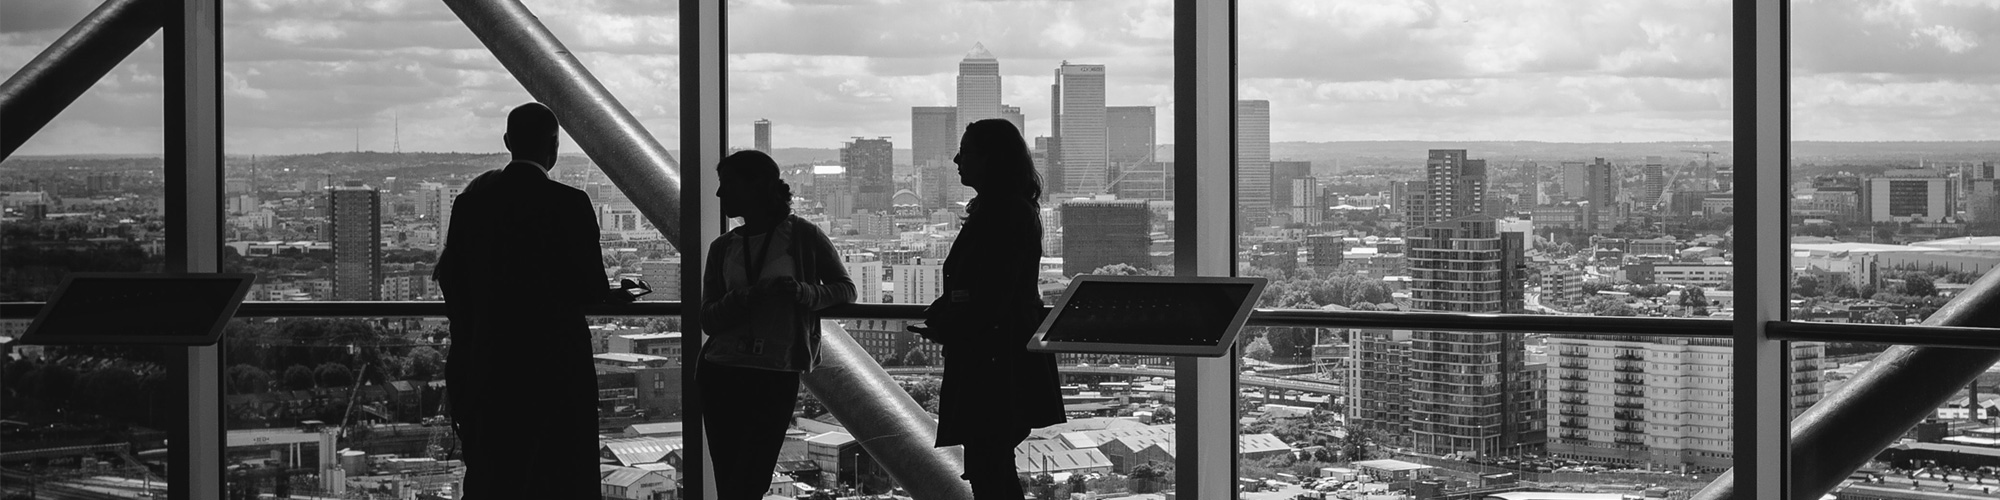 People in a high rise building viewing the skyline